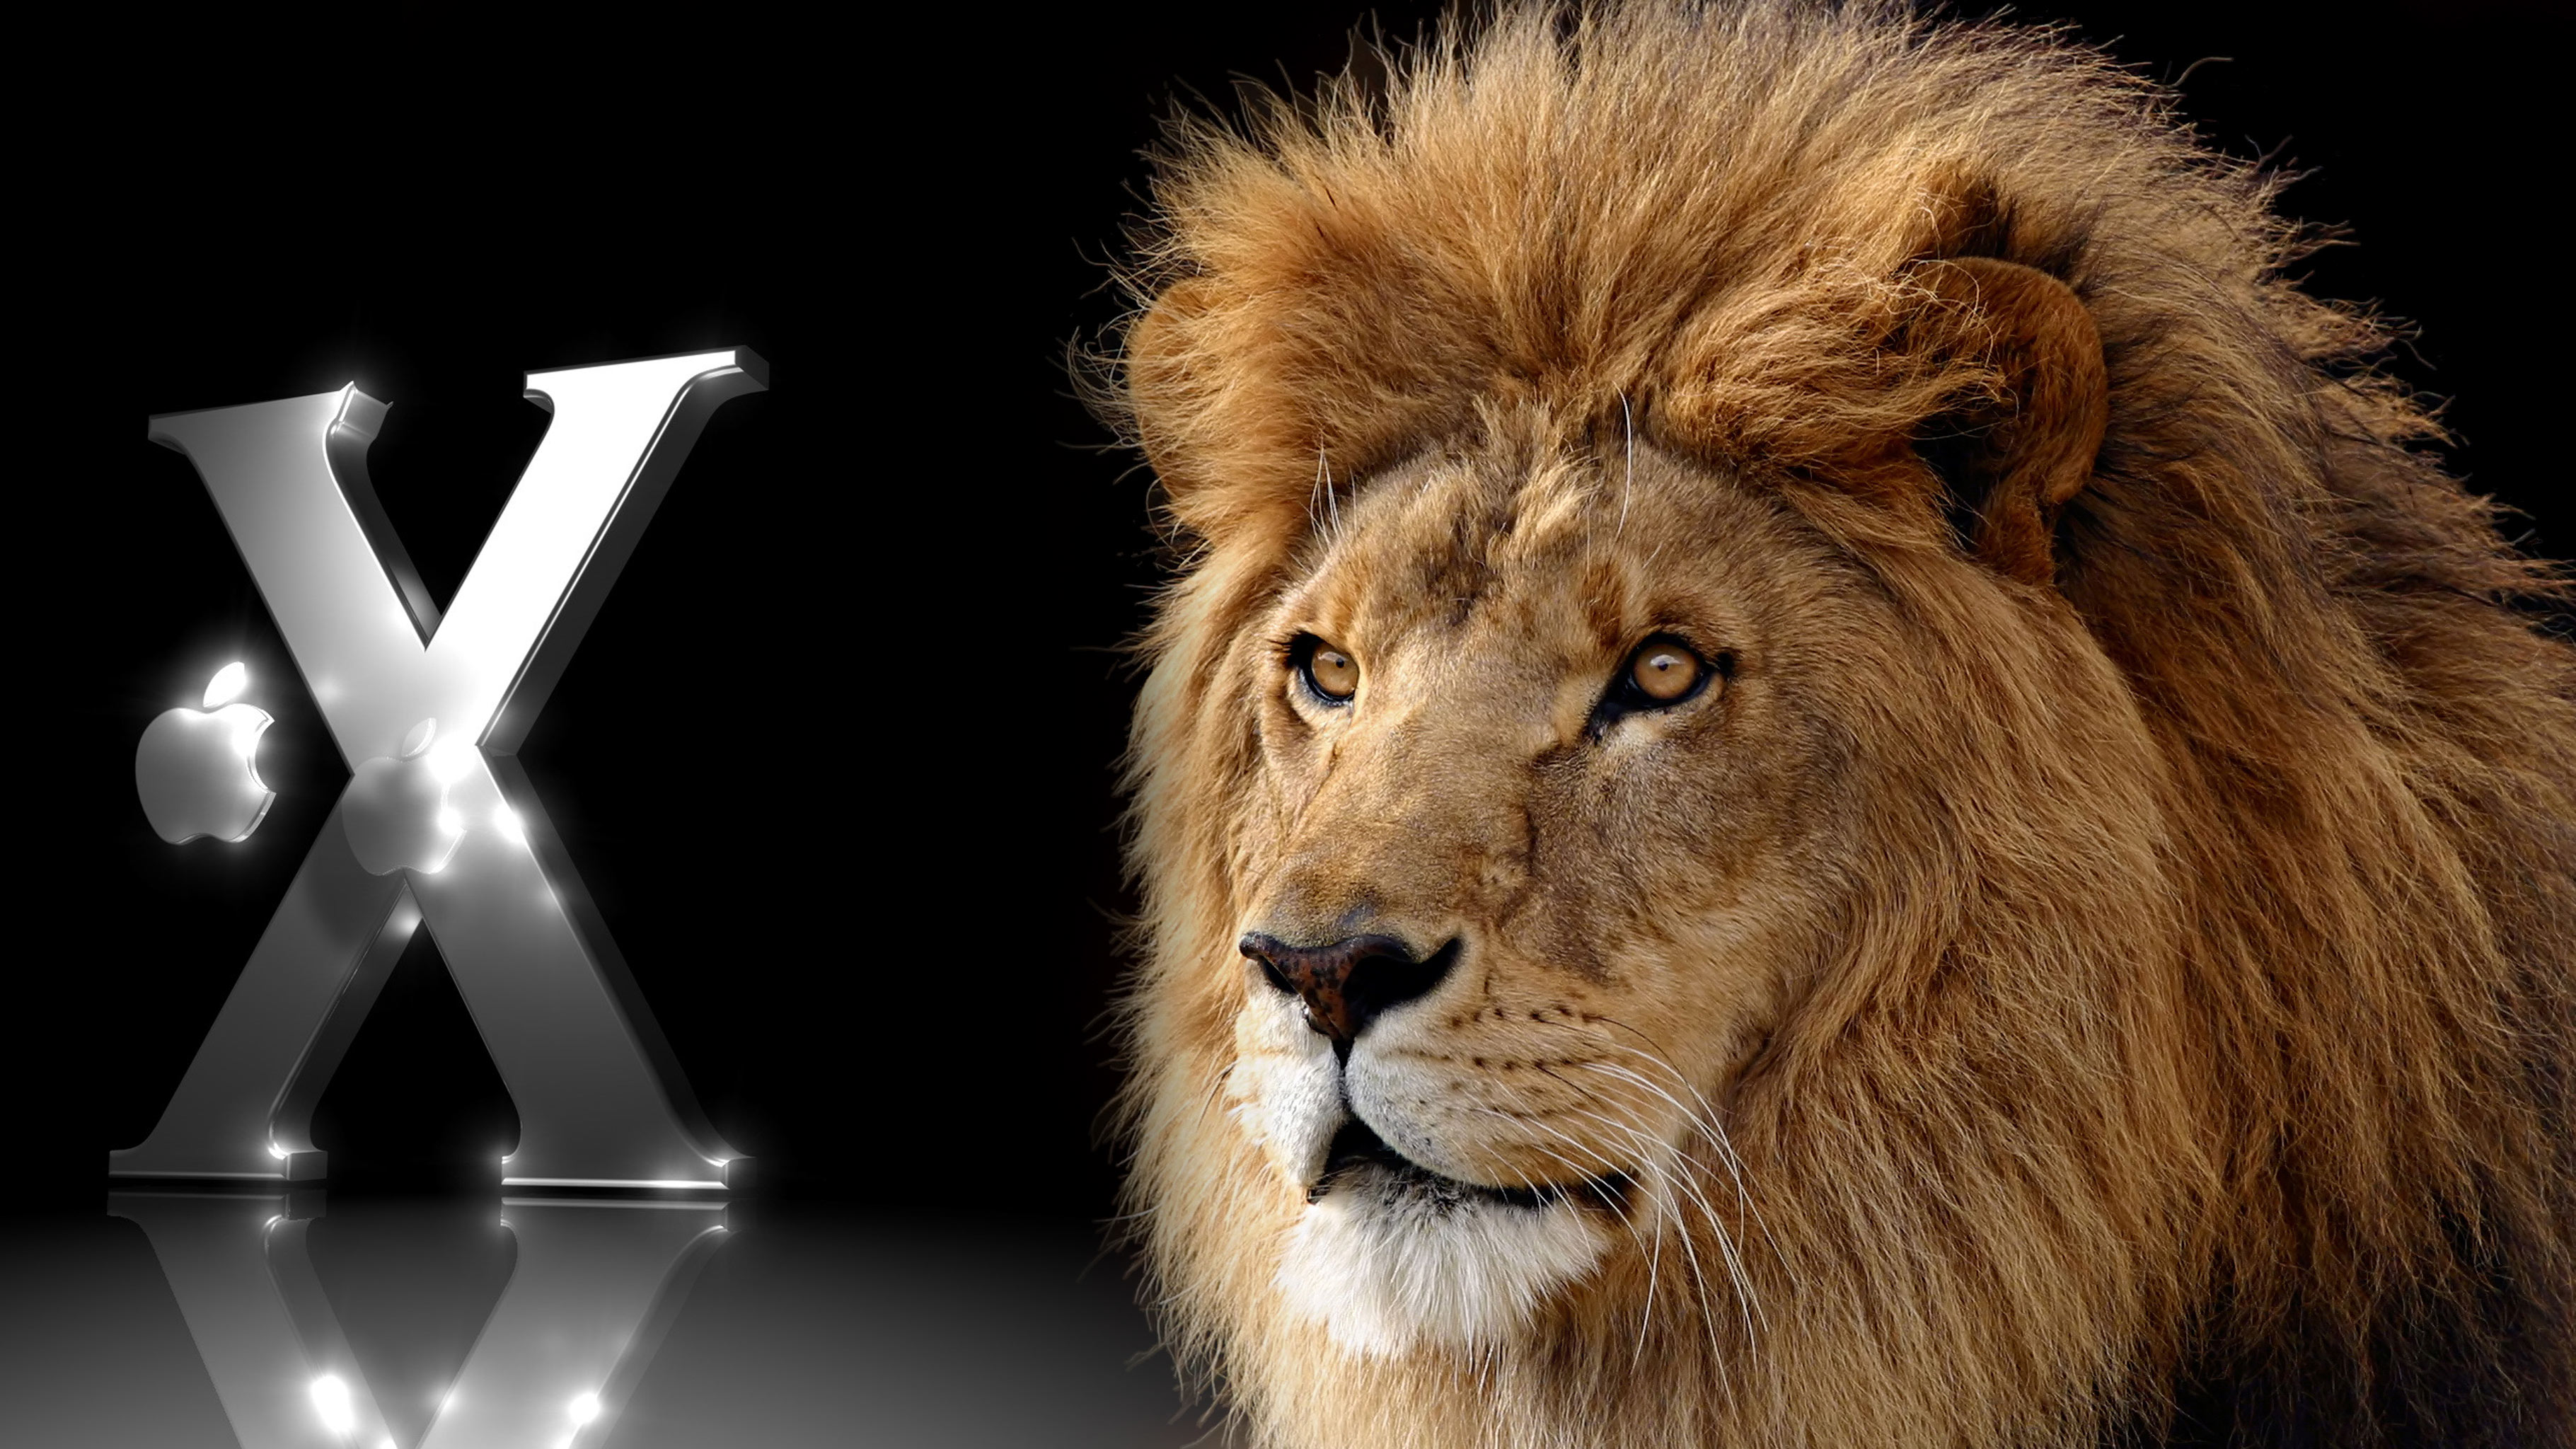 Good Wallpaper Home Screen Lion - apple-mac-os-x-lion  Best Photo Reference_36264.jpg